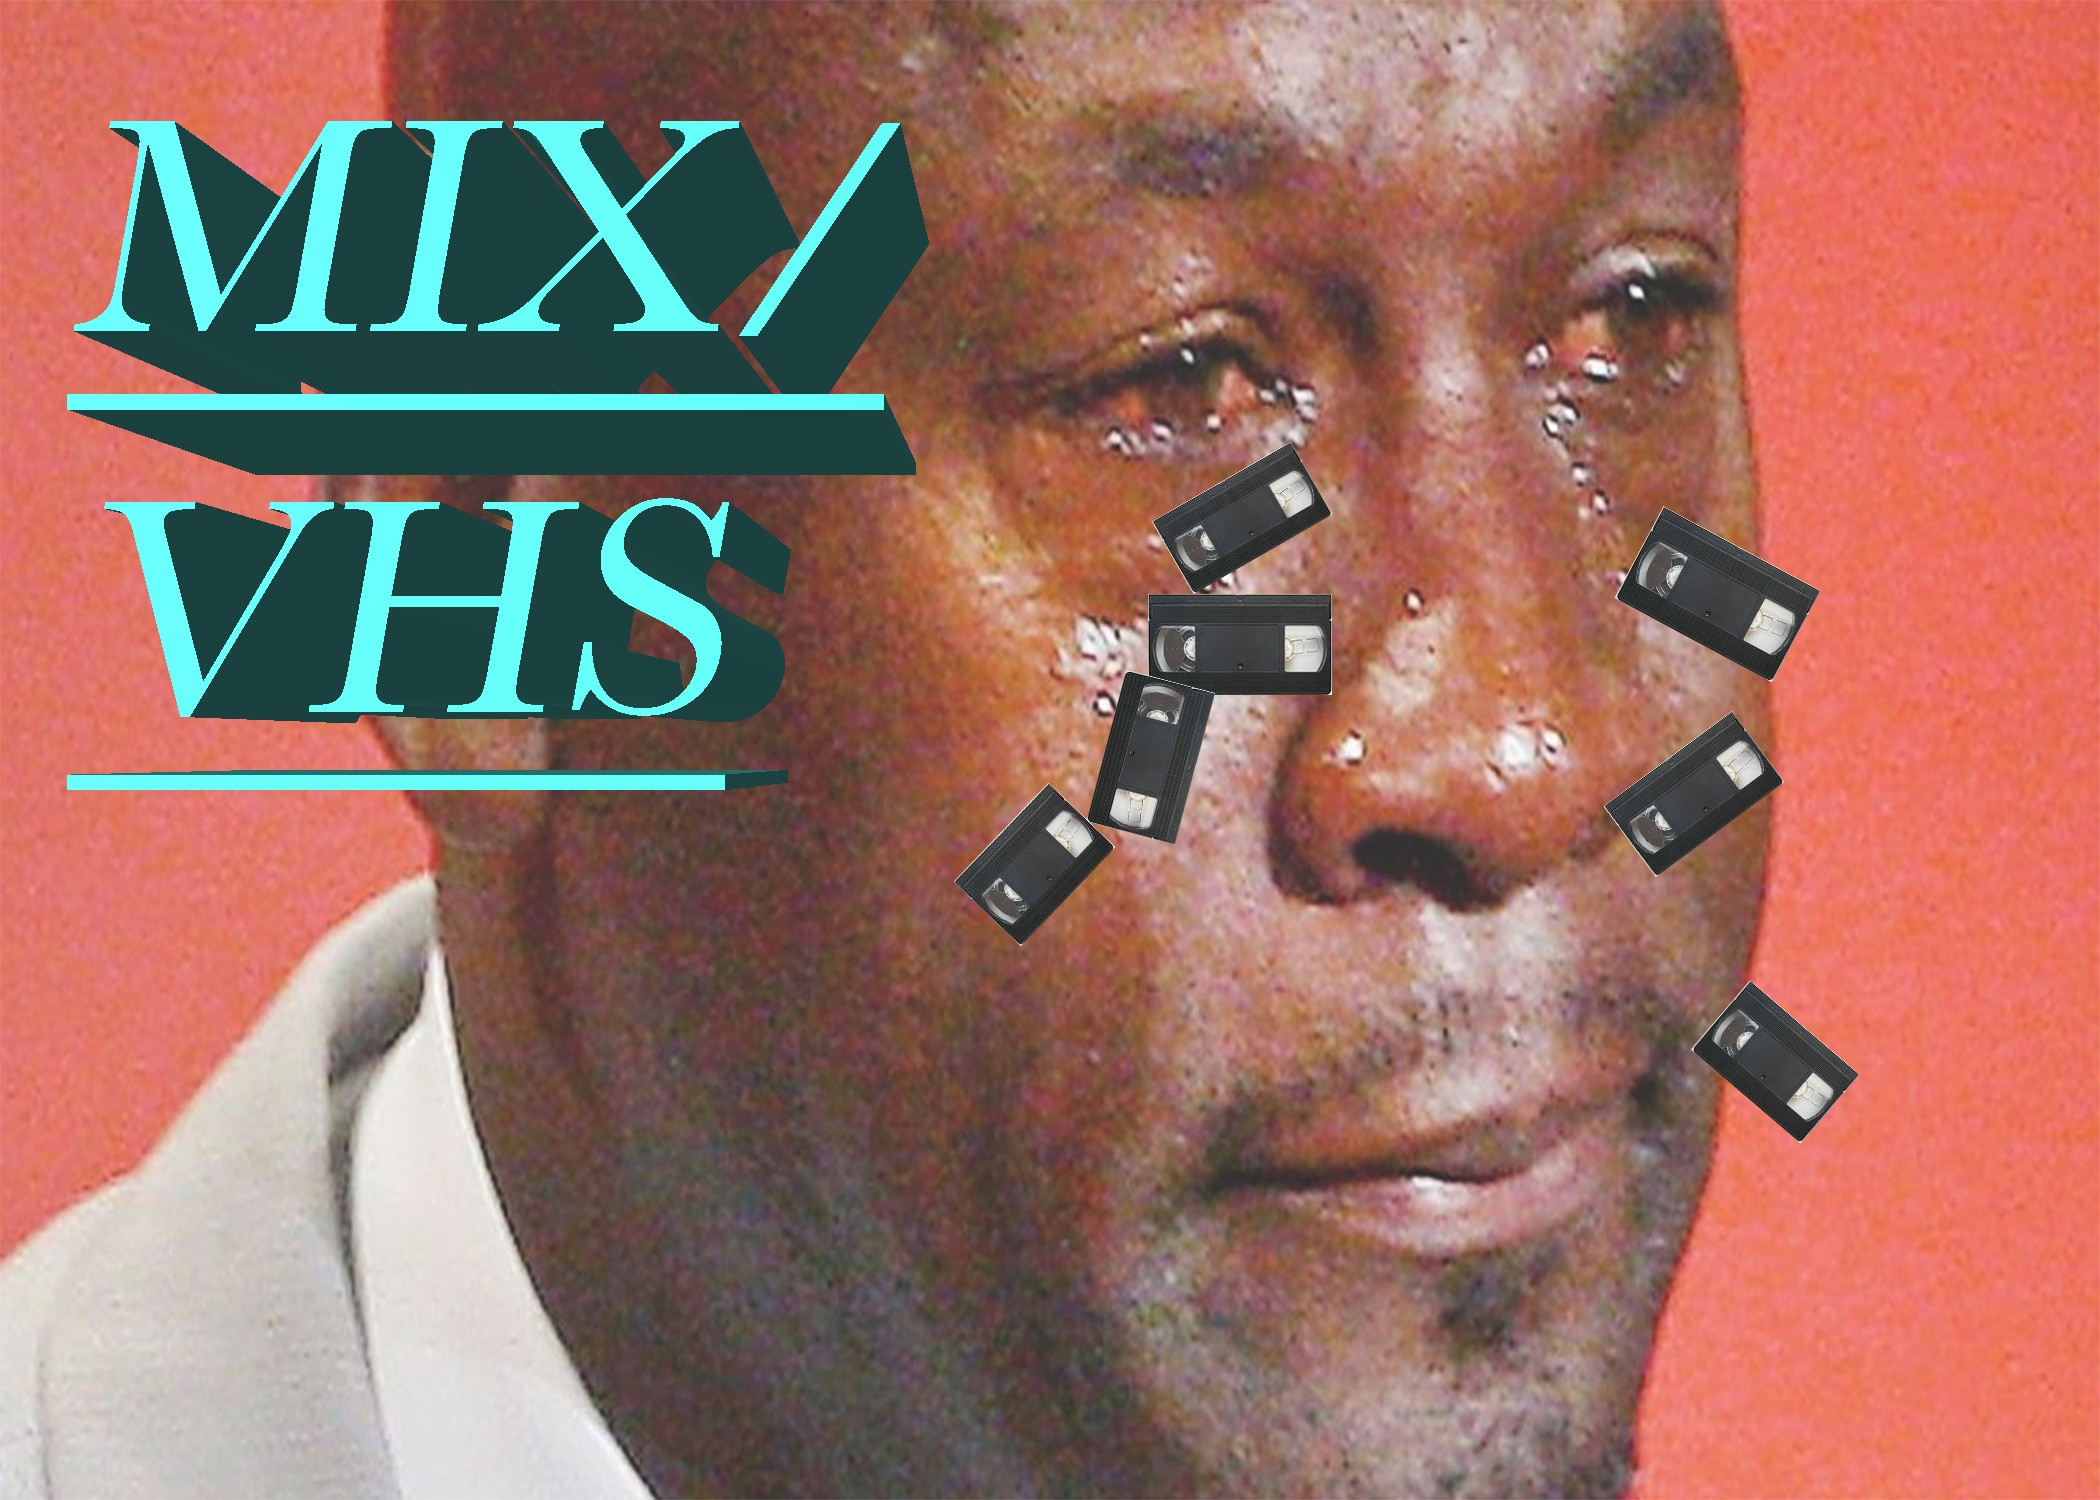 MIX/VHS 089 - Don't cry, we here at MIX/VHS have the spoonful of sugar to make your weekday struggles go down. Come take a look at our expertly curated list of internet-tainment from our expert team of curators. Like the week before and the week and the week before, we got you covered like your best friend, but on the internet.